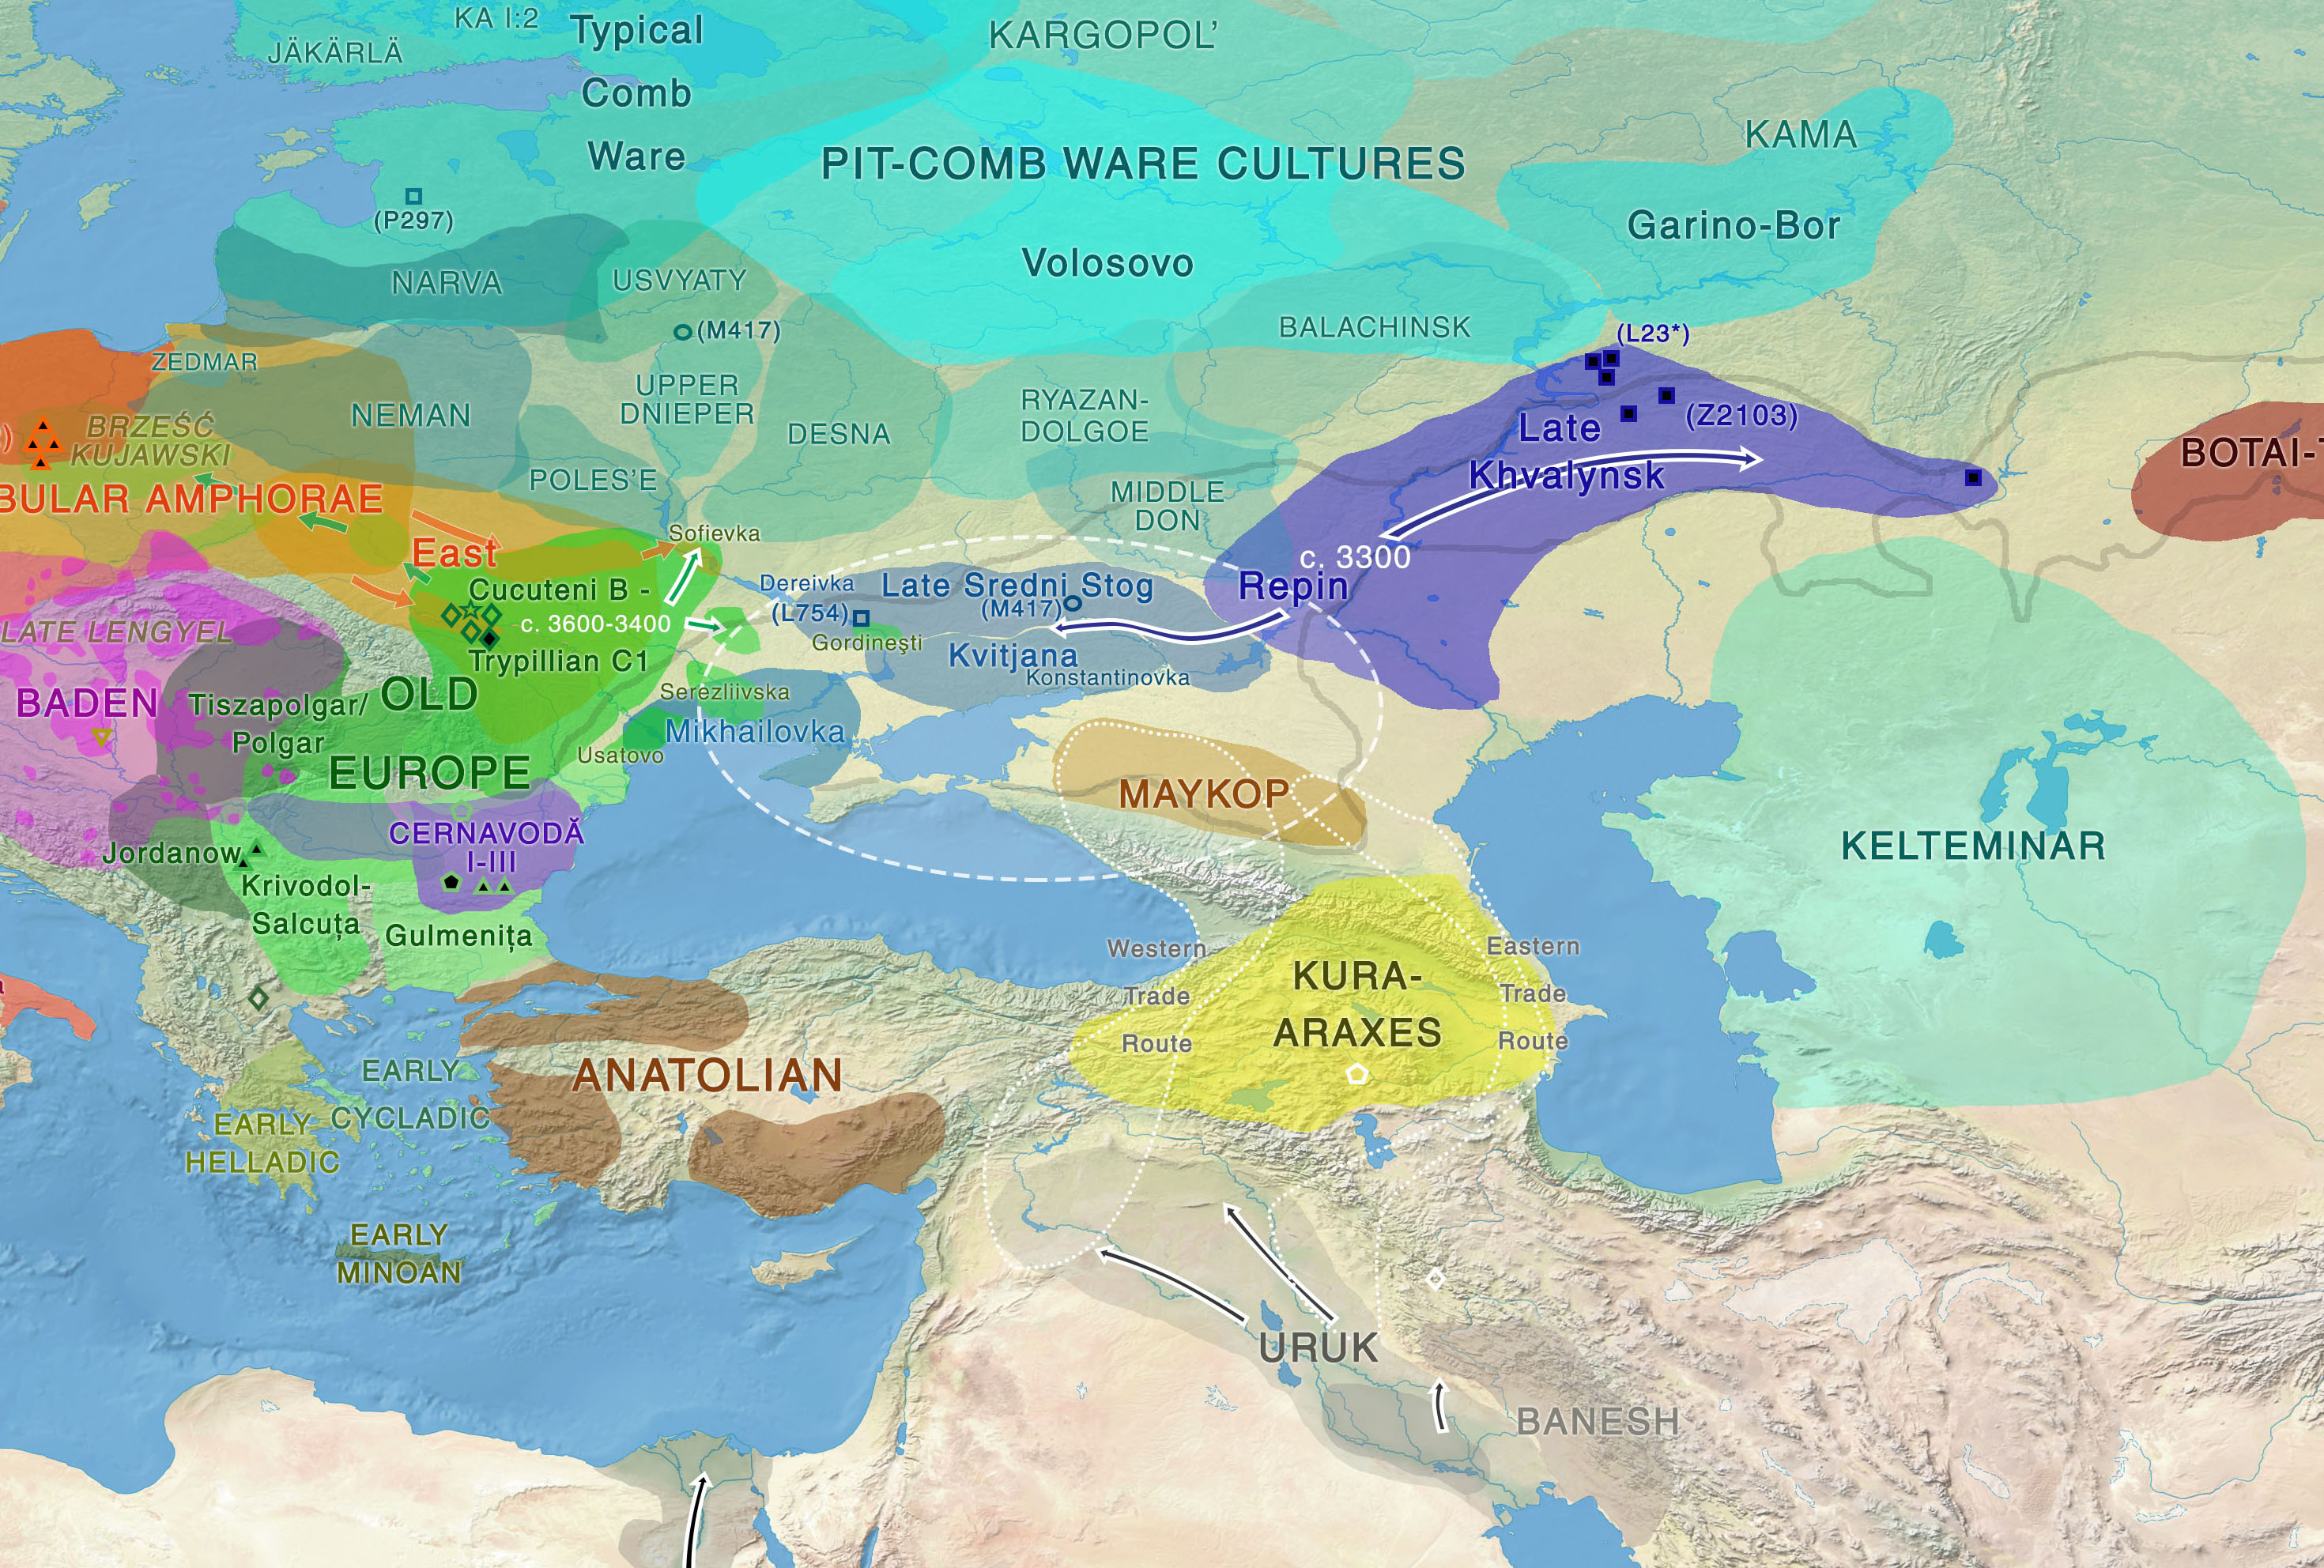 eneolithic-steppe-cultures